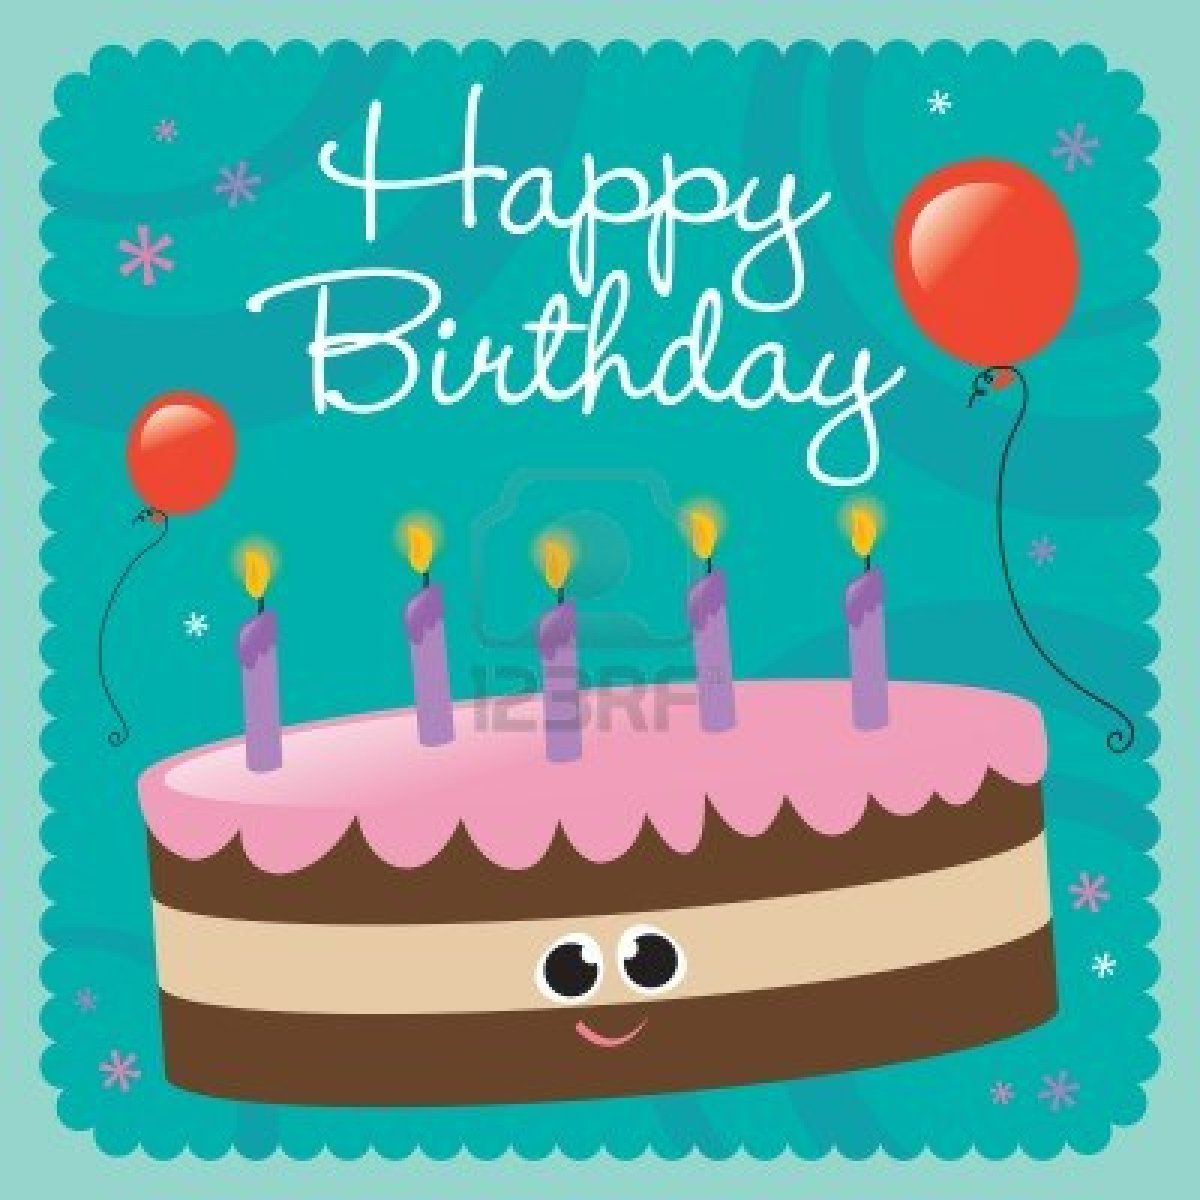 Happy Birthday Wishes Images Happy Birthday Cards and Birthday – Birthday Greetings and Cards